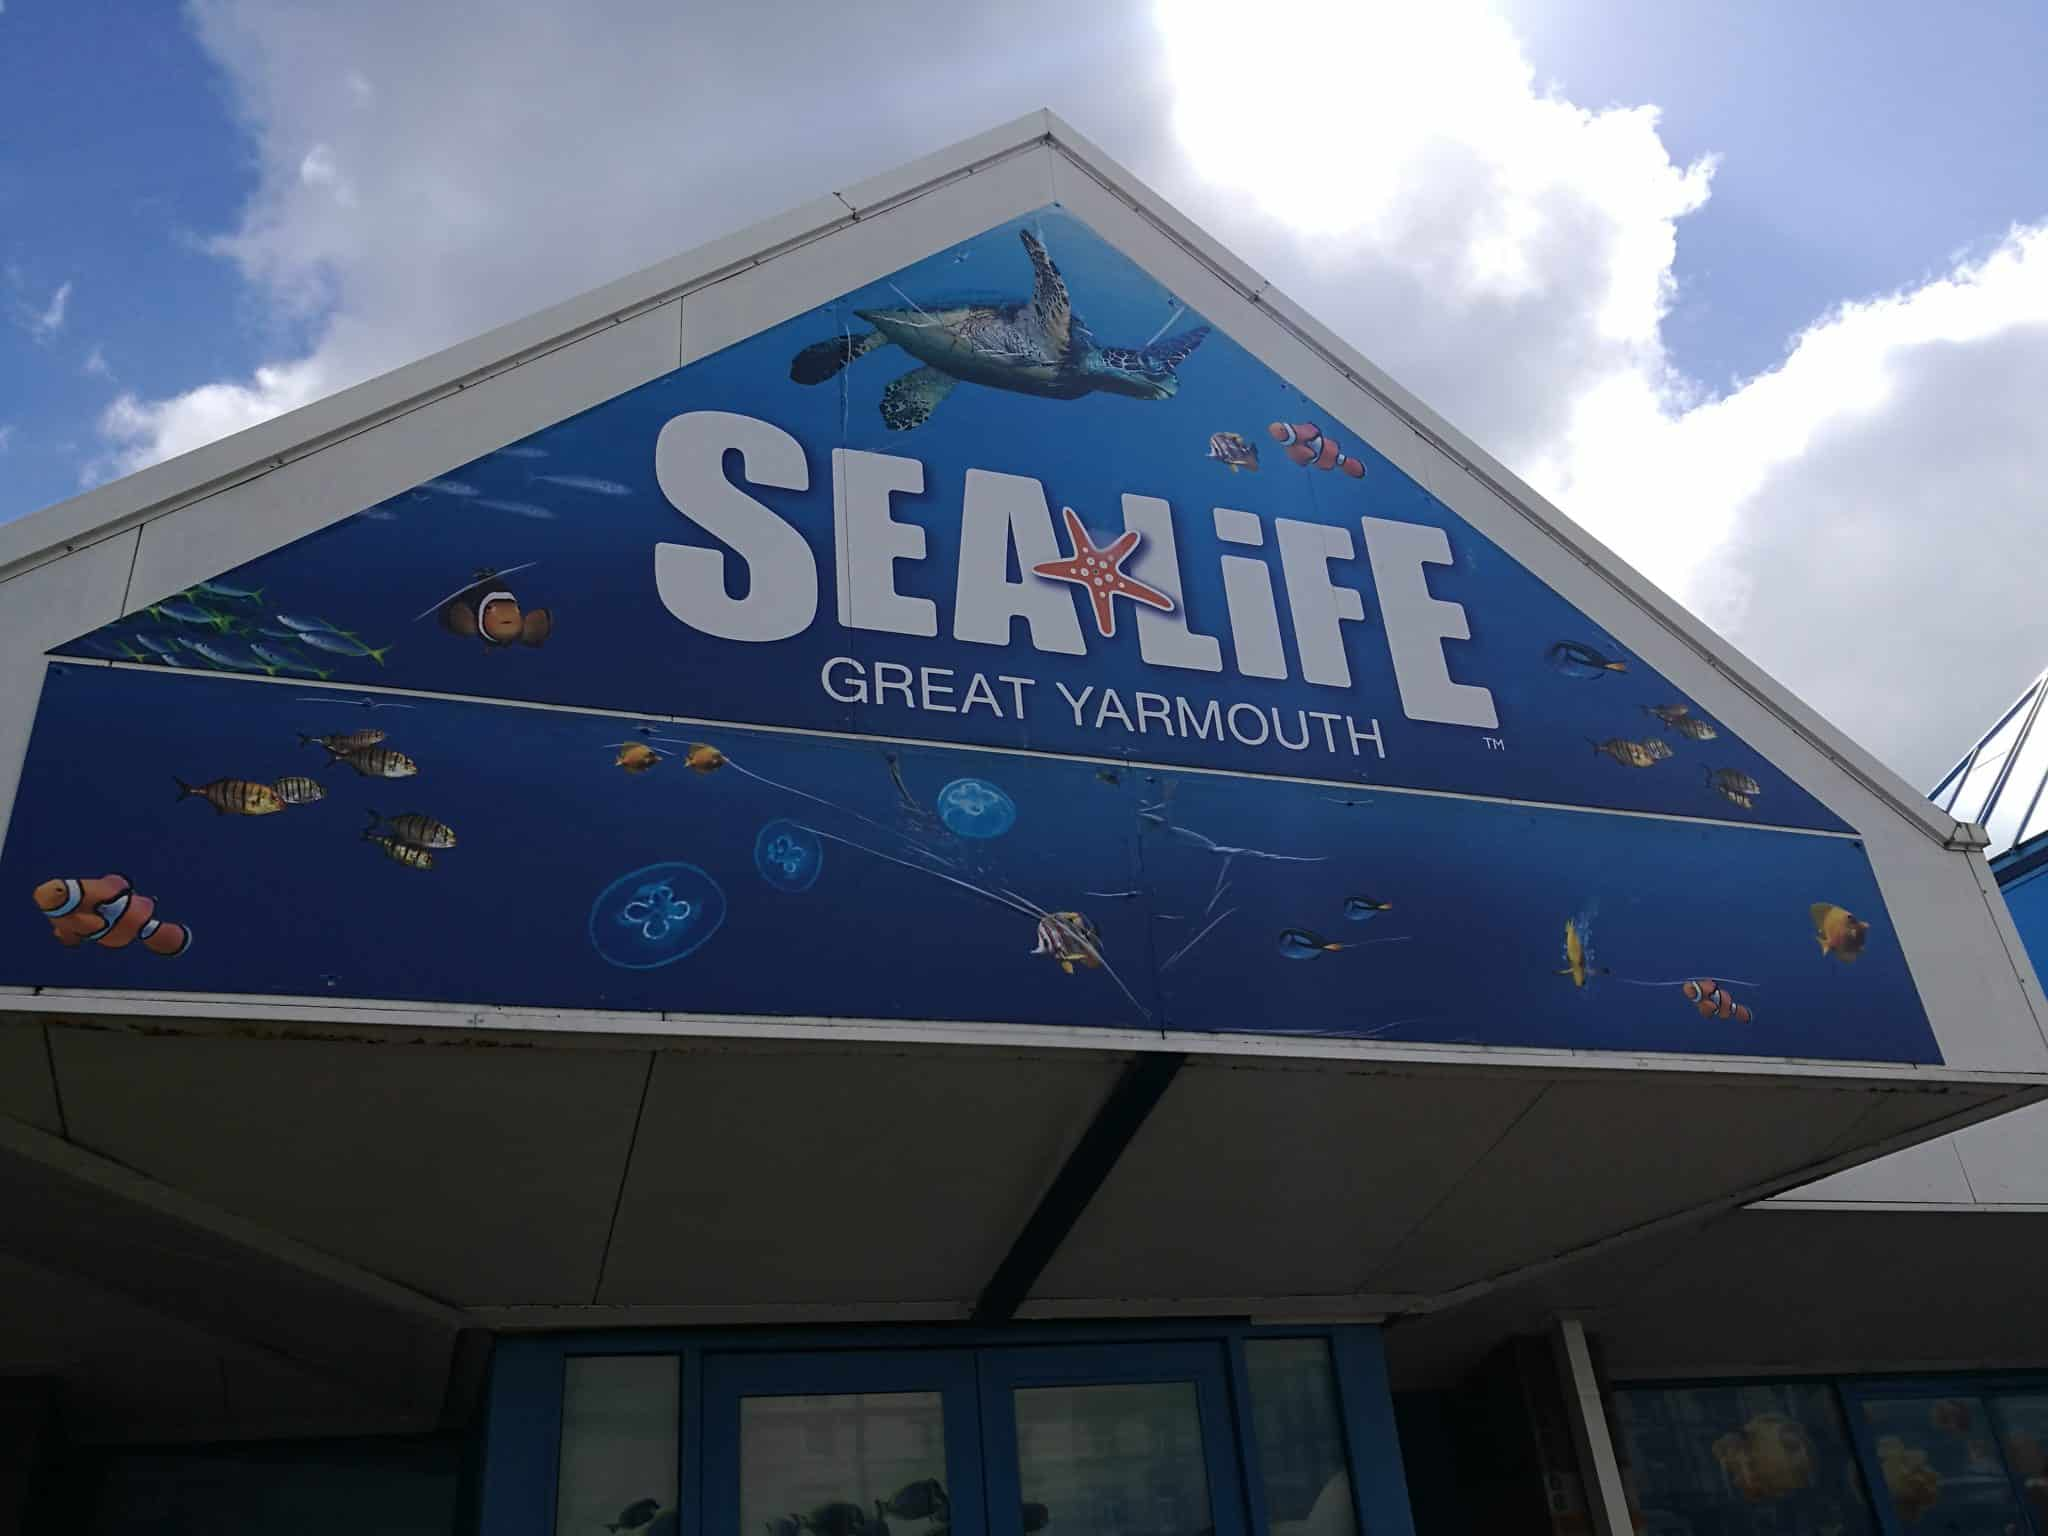 Sealife Great Yarmouth